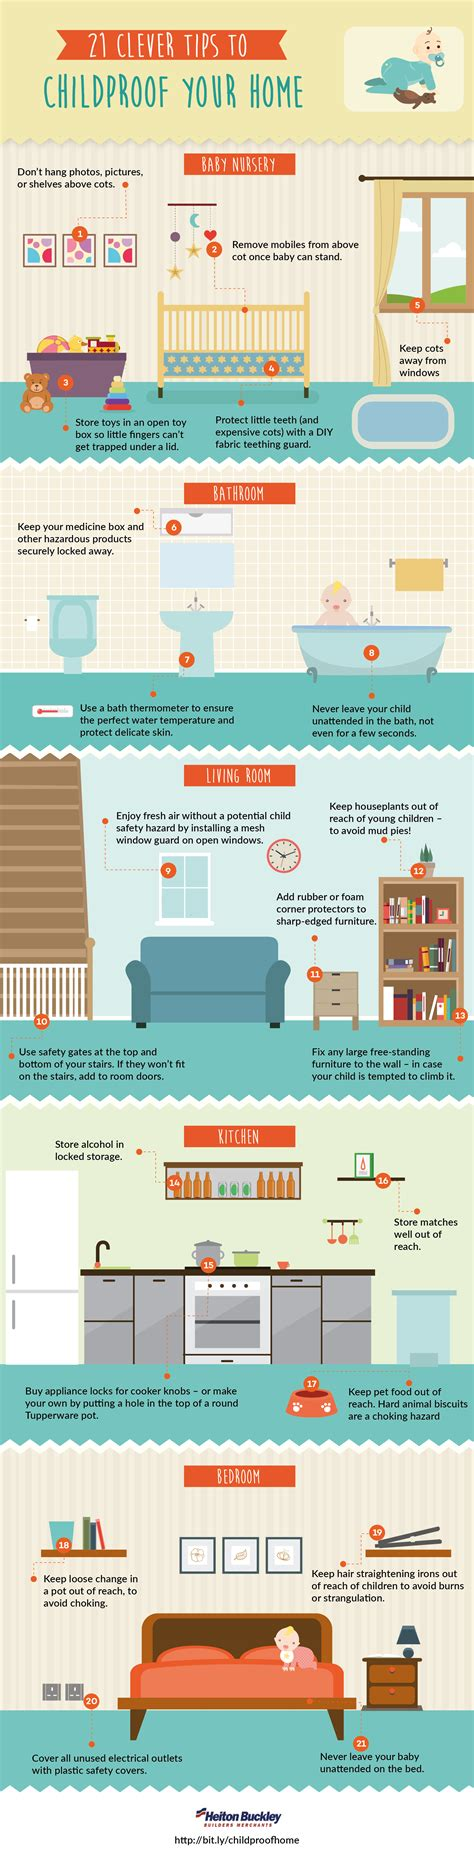 8 Tips To Childproof Your Home by 21 Clever Tips To Childproof Your Home Infographic